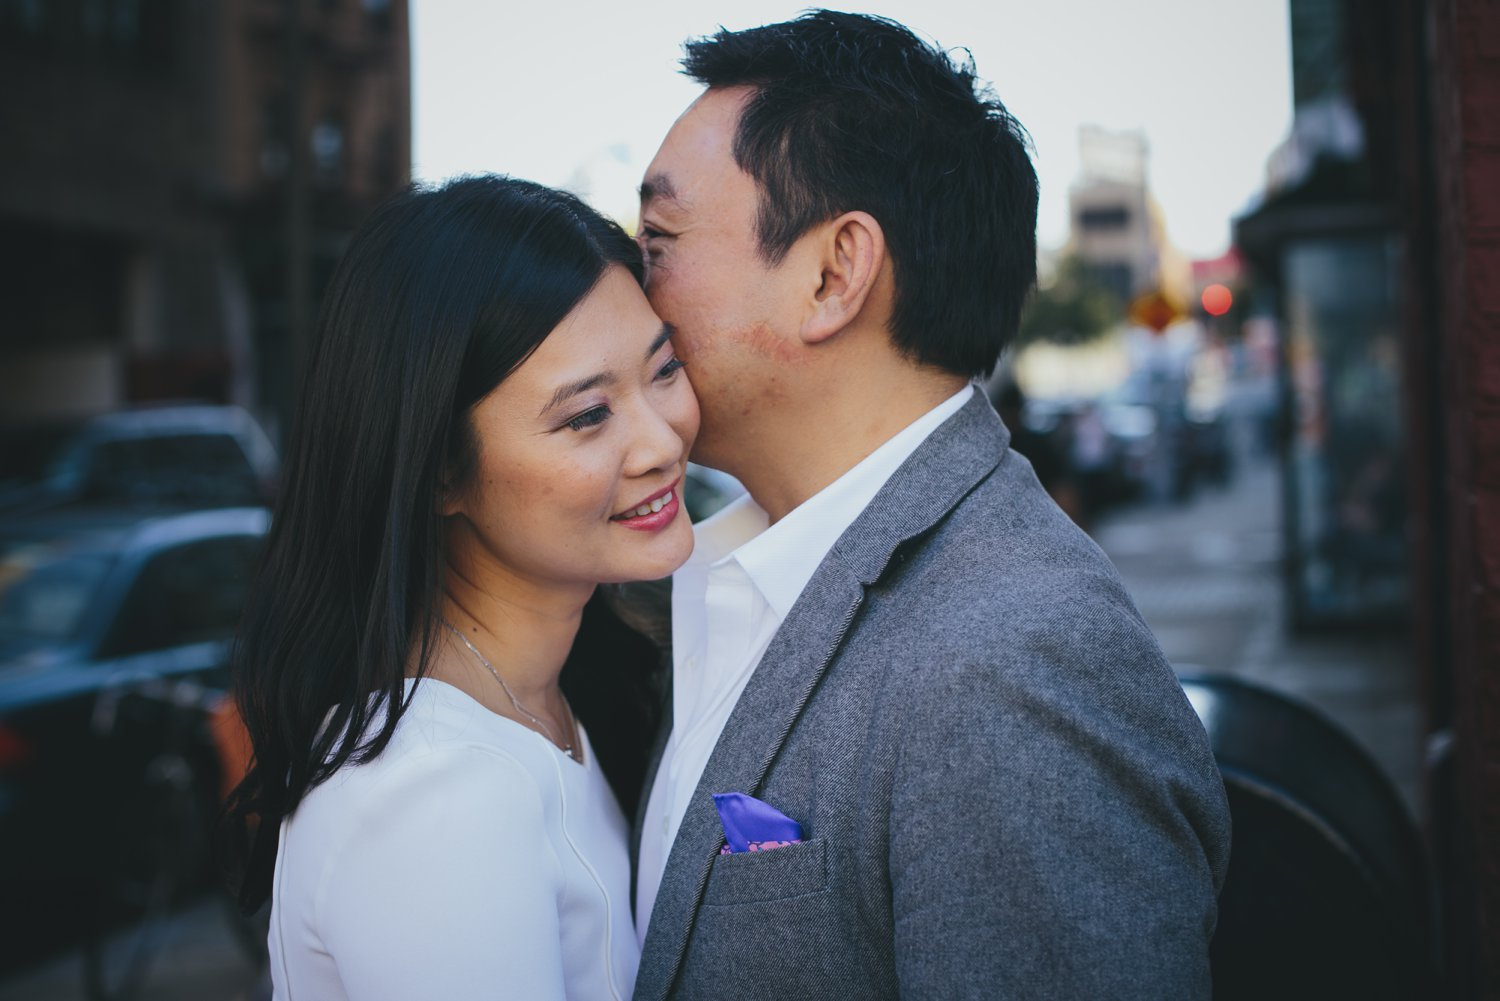 7NYC-NJ-ENGAGEMENT-PHOTOGRAPHY-BY-INTOTHESTORY-MOO-JAE.JPG